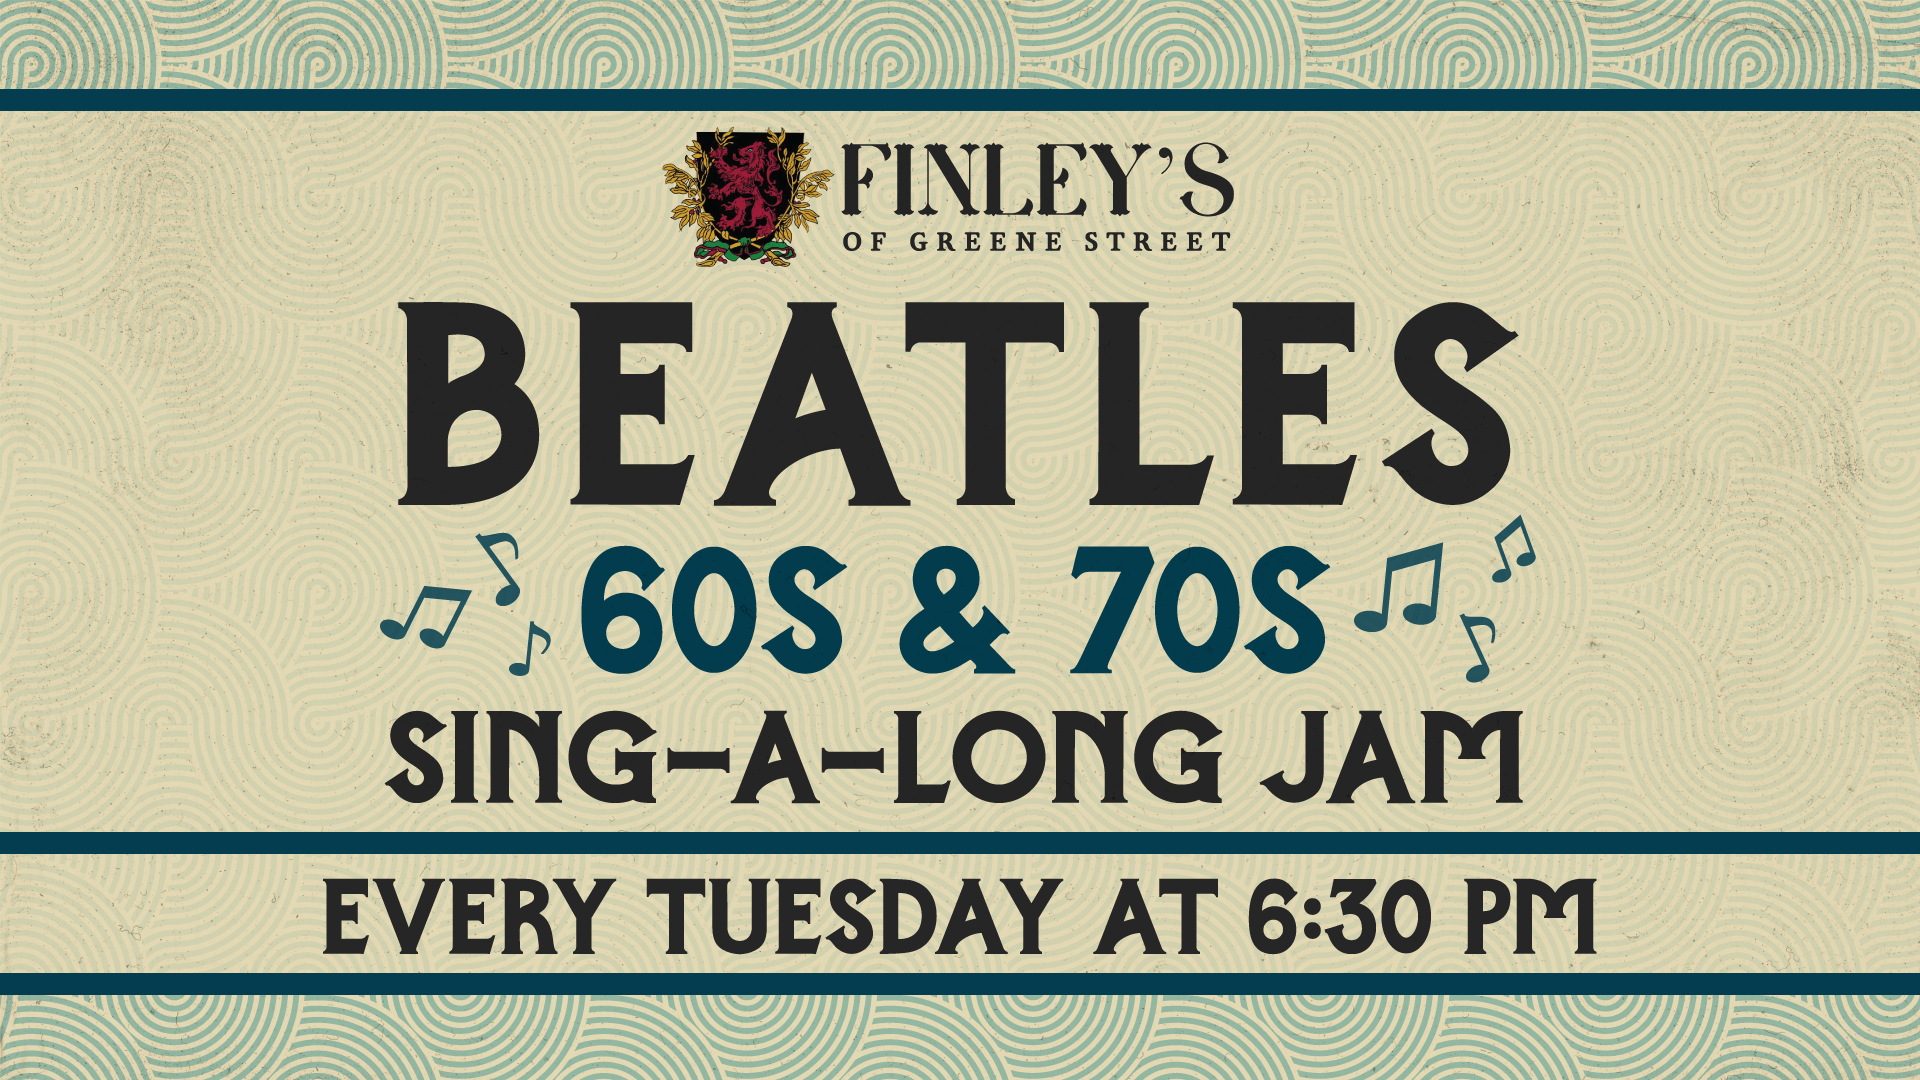 Flyer for Beatles 60s and 70s Sing-a-Long Jam